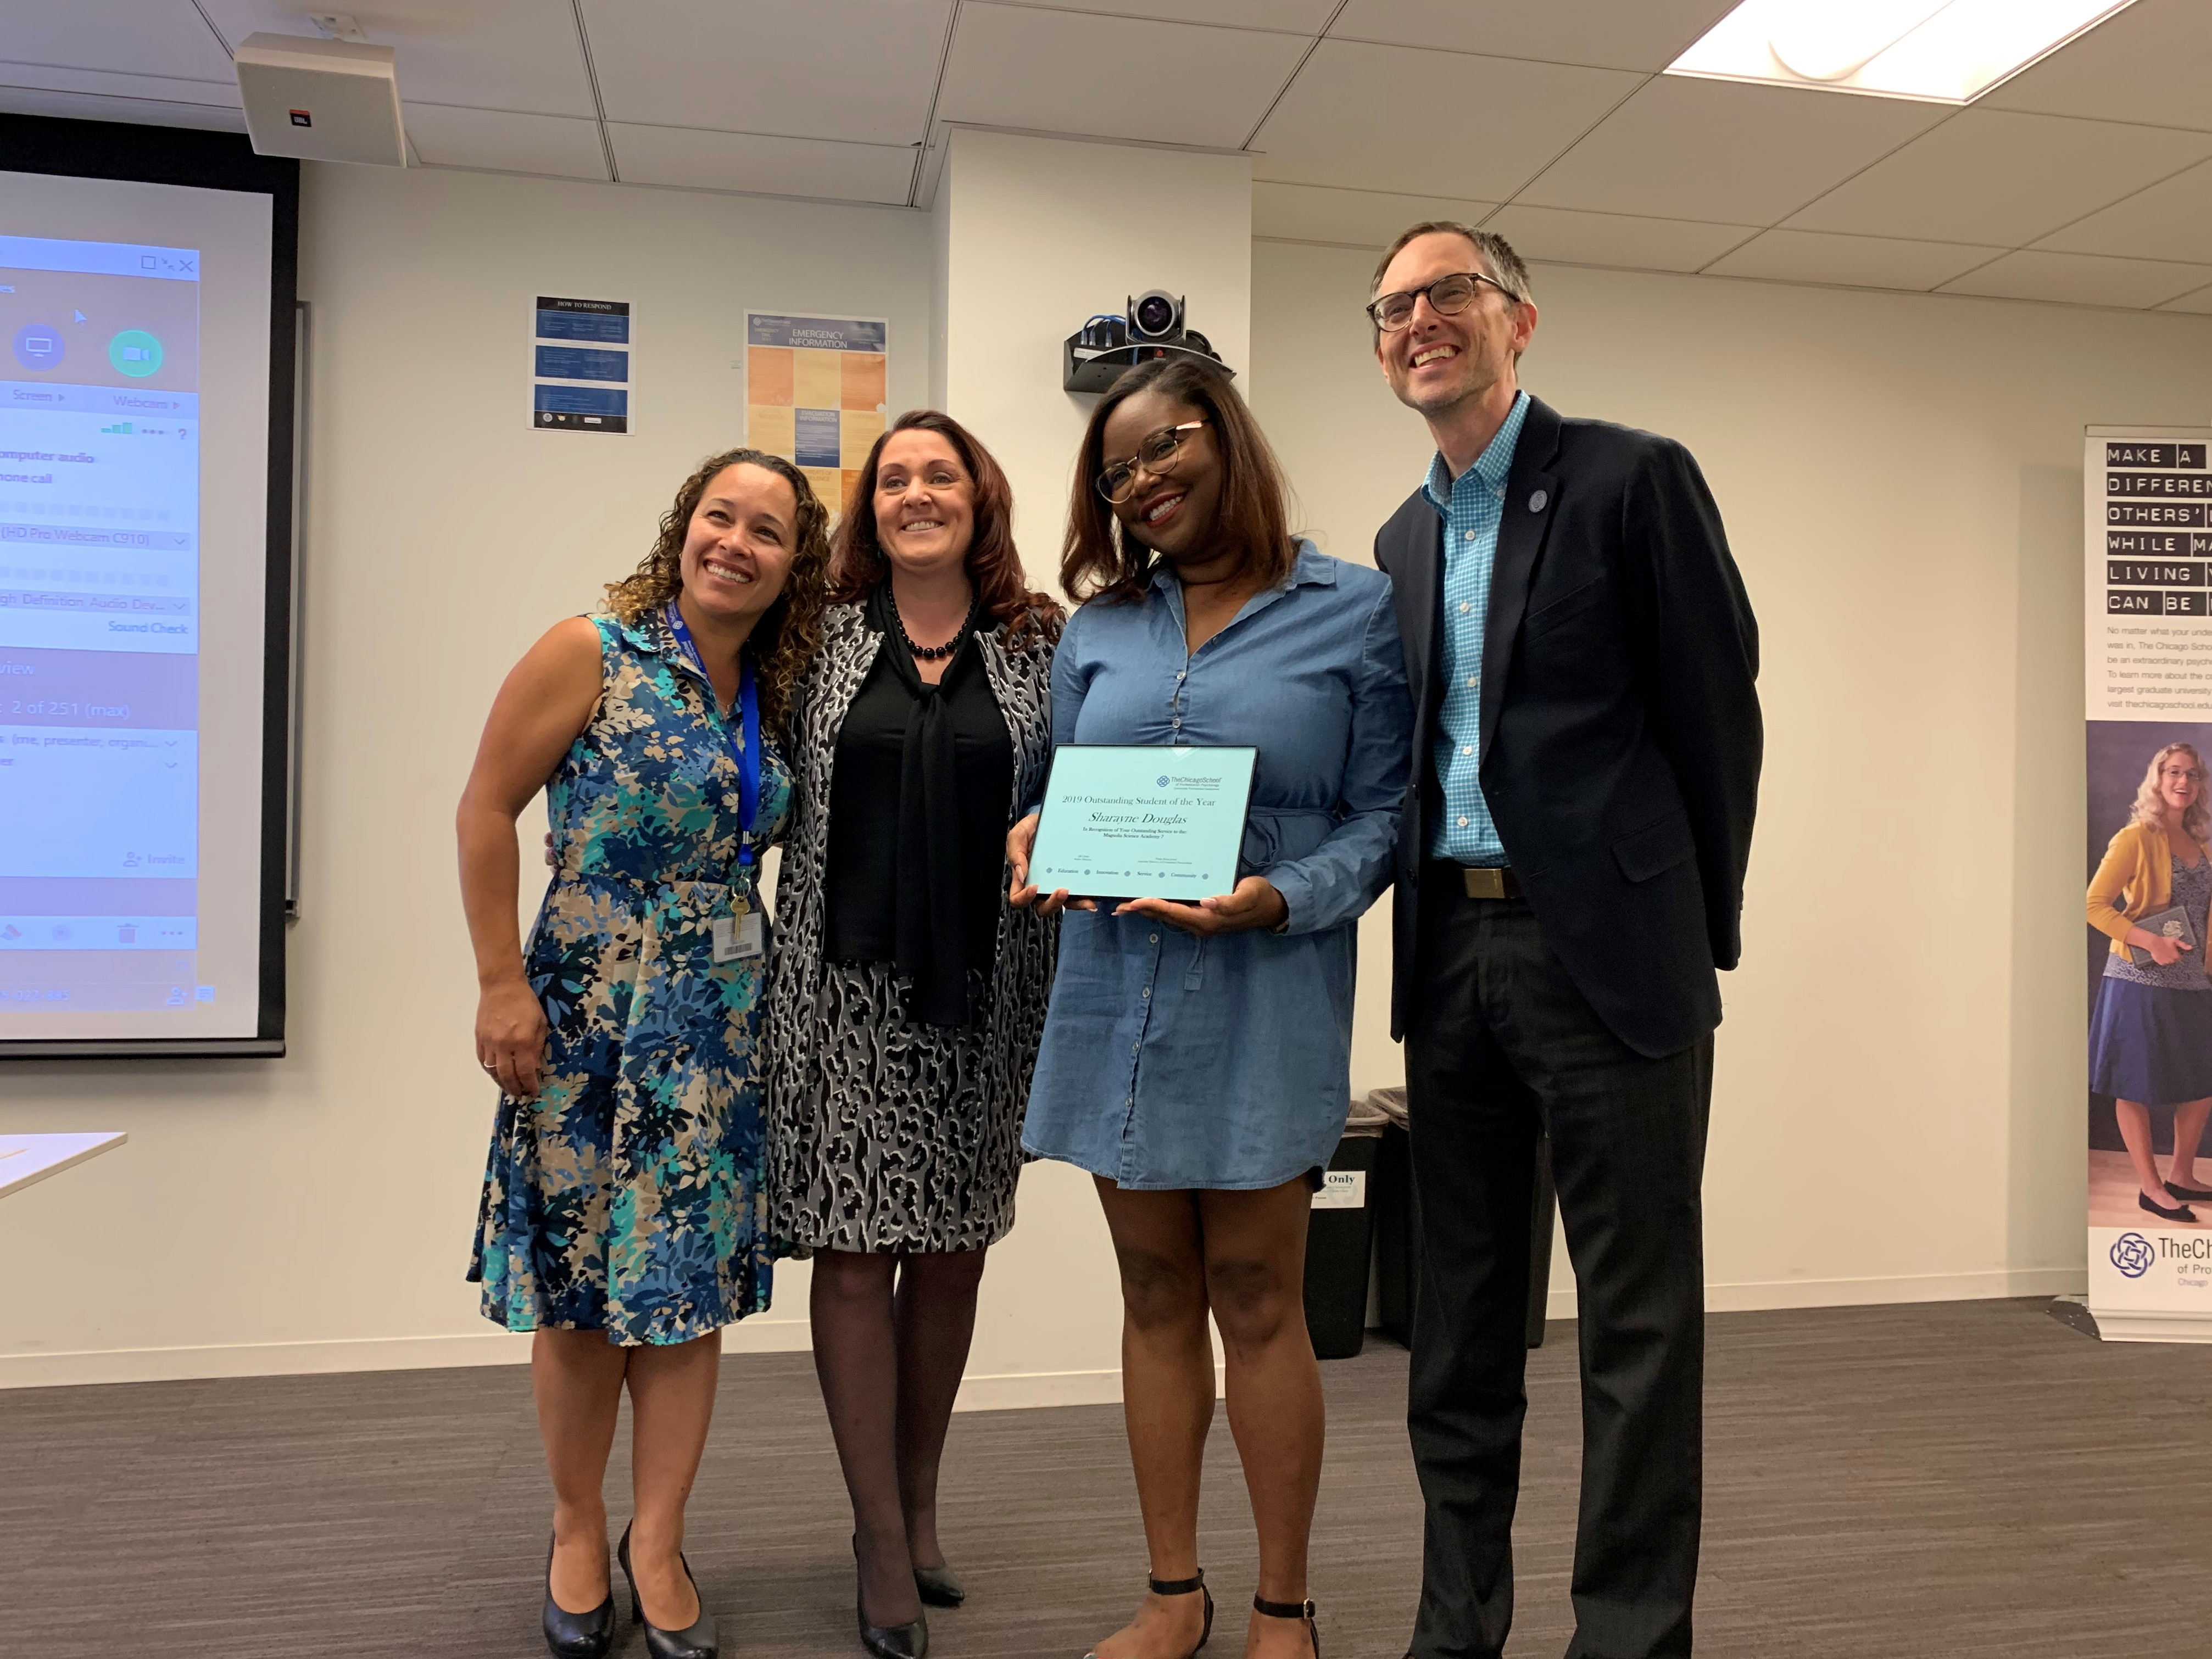 - Outstanding L.A. Student, Sharayne Douglas serving with Magnolia Science Academy 7.